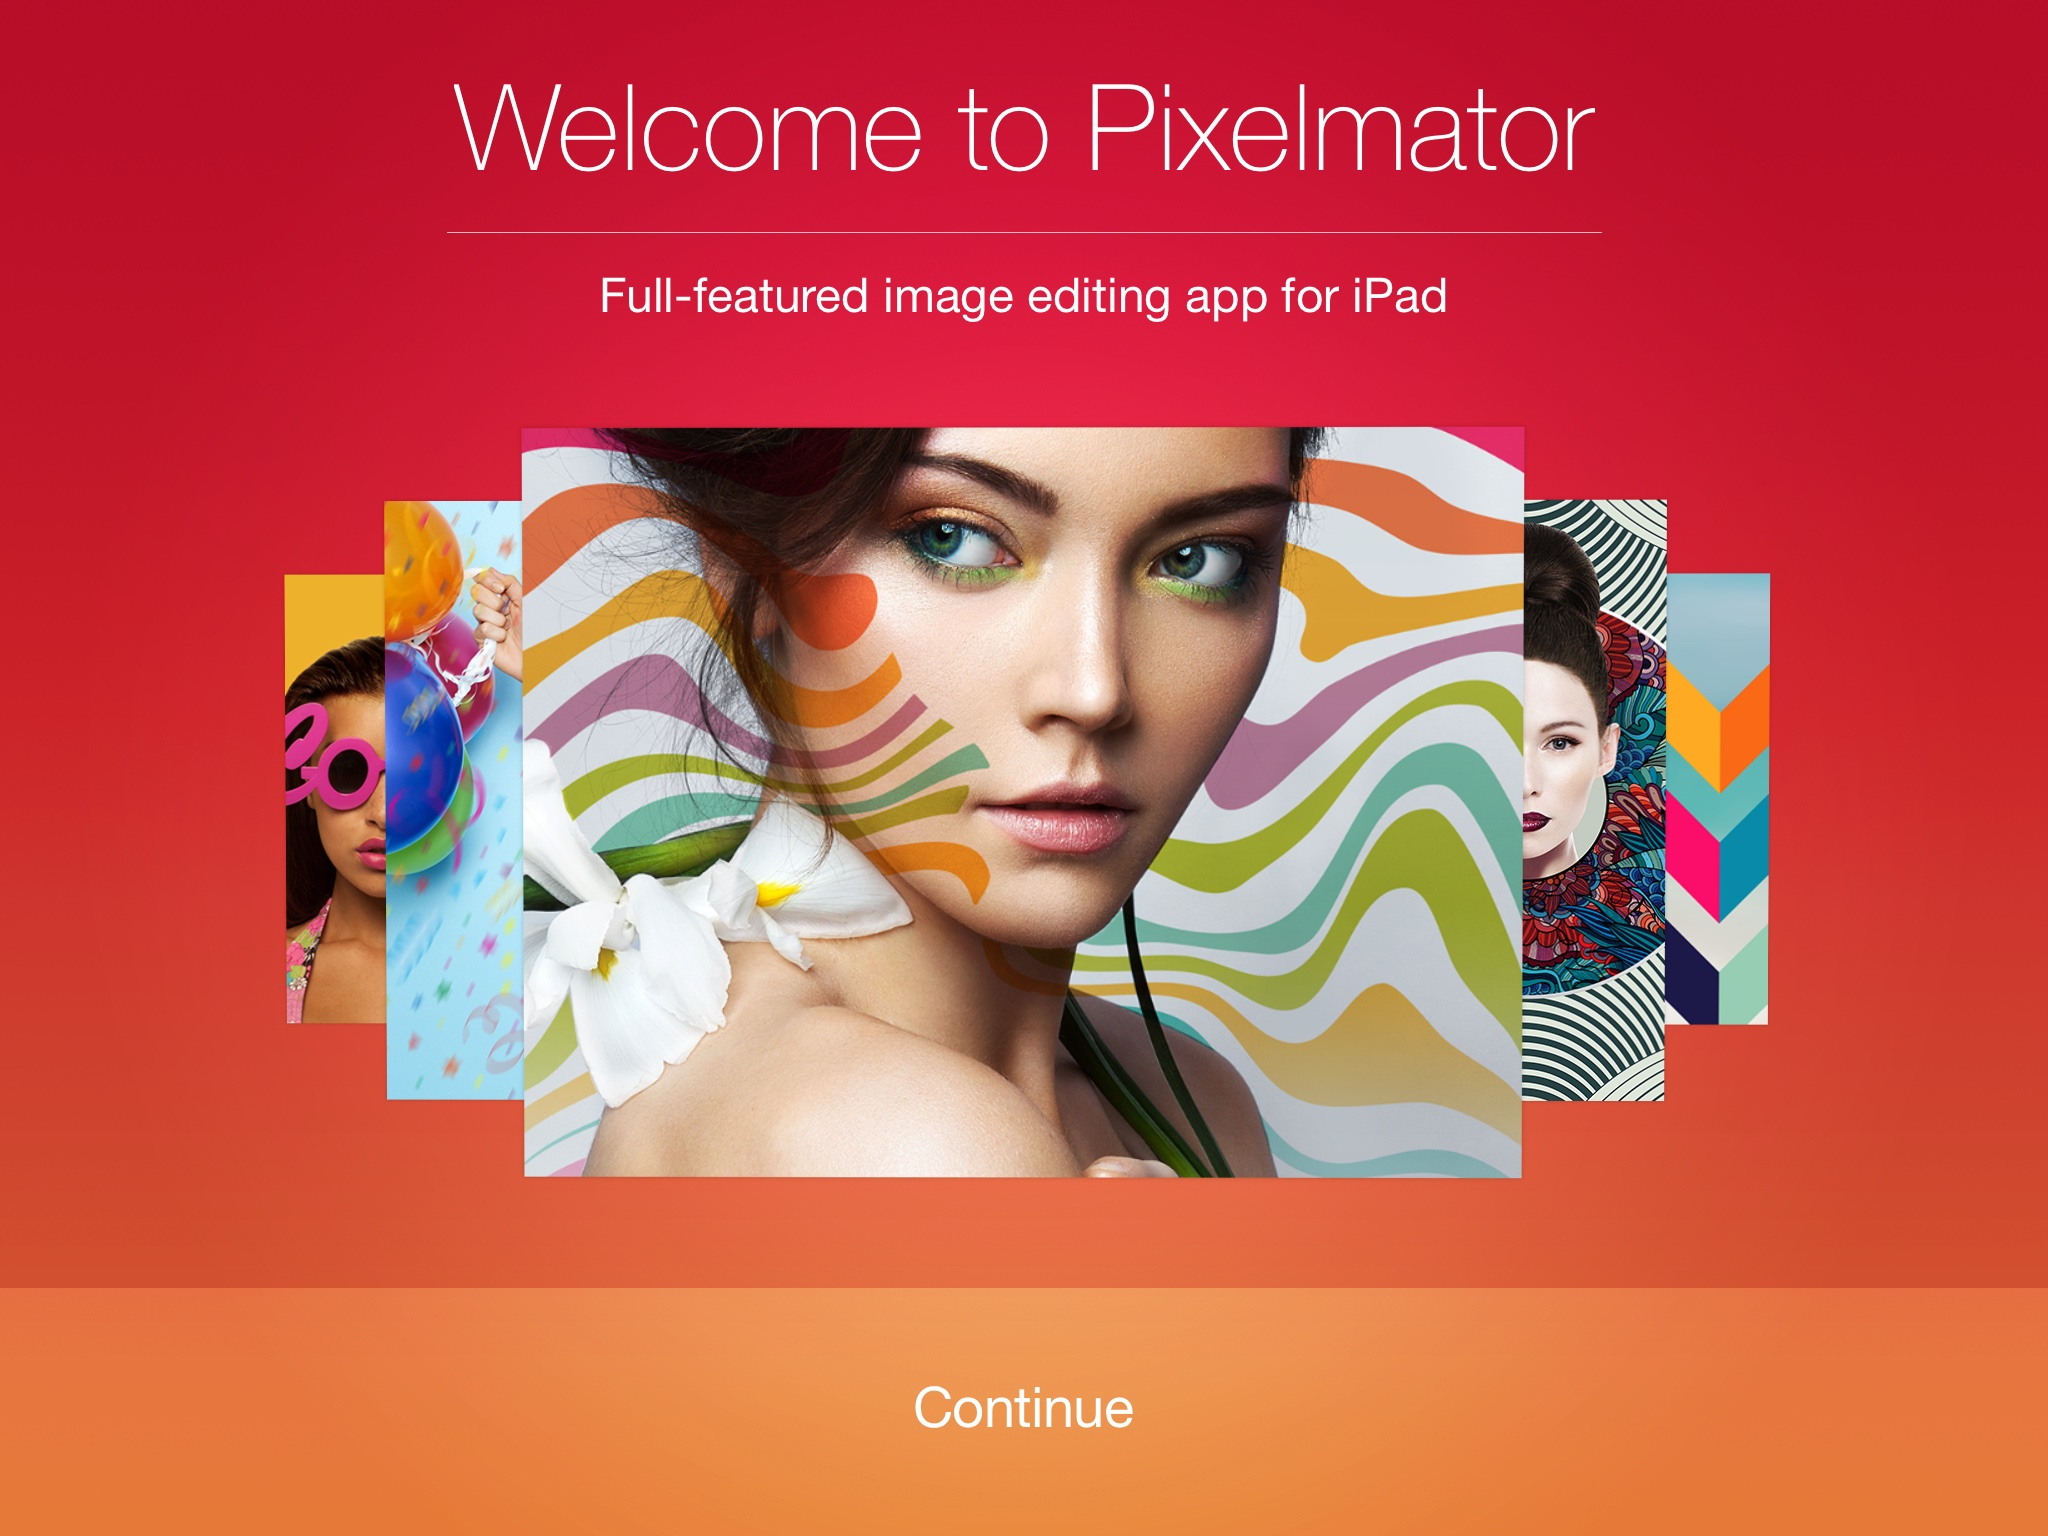 Welcome to Pixelmator for iPad